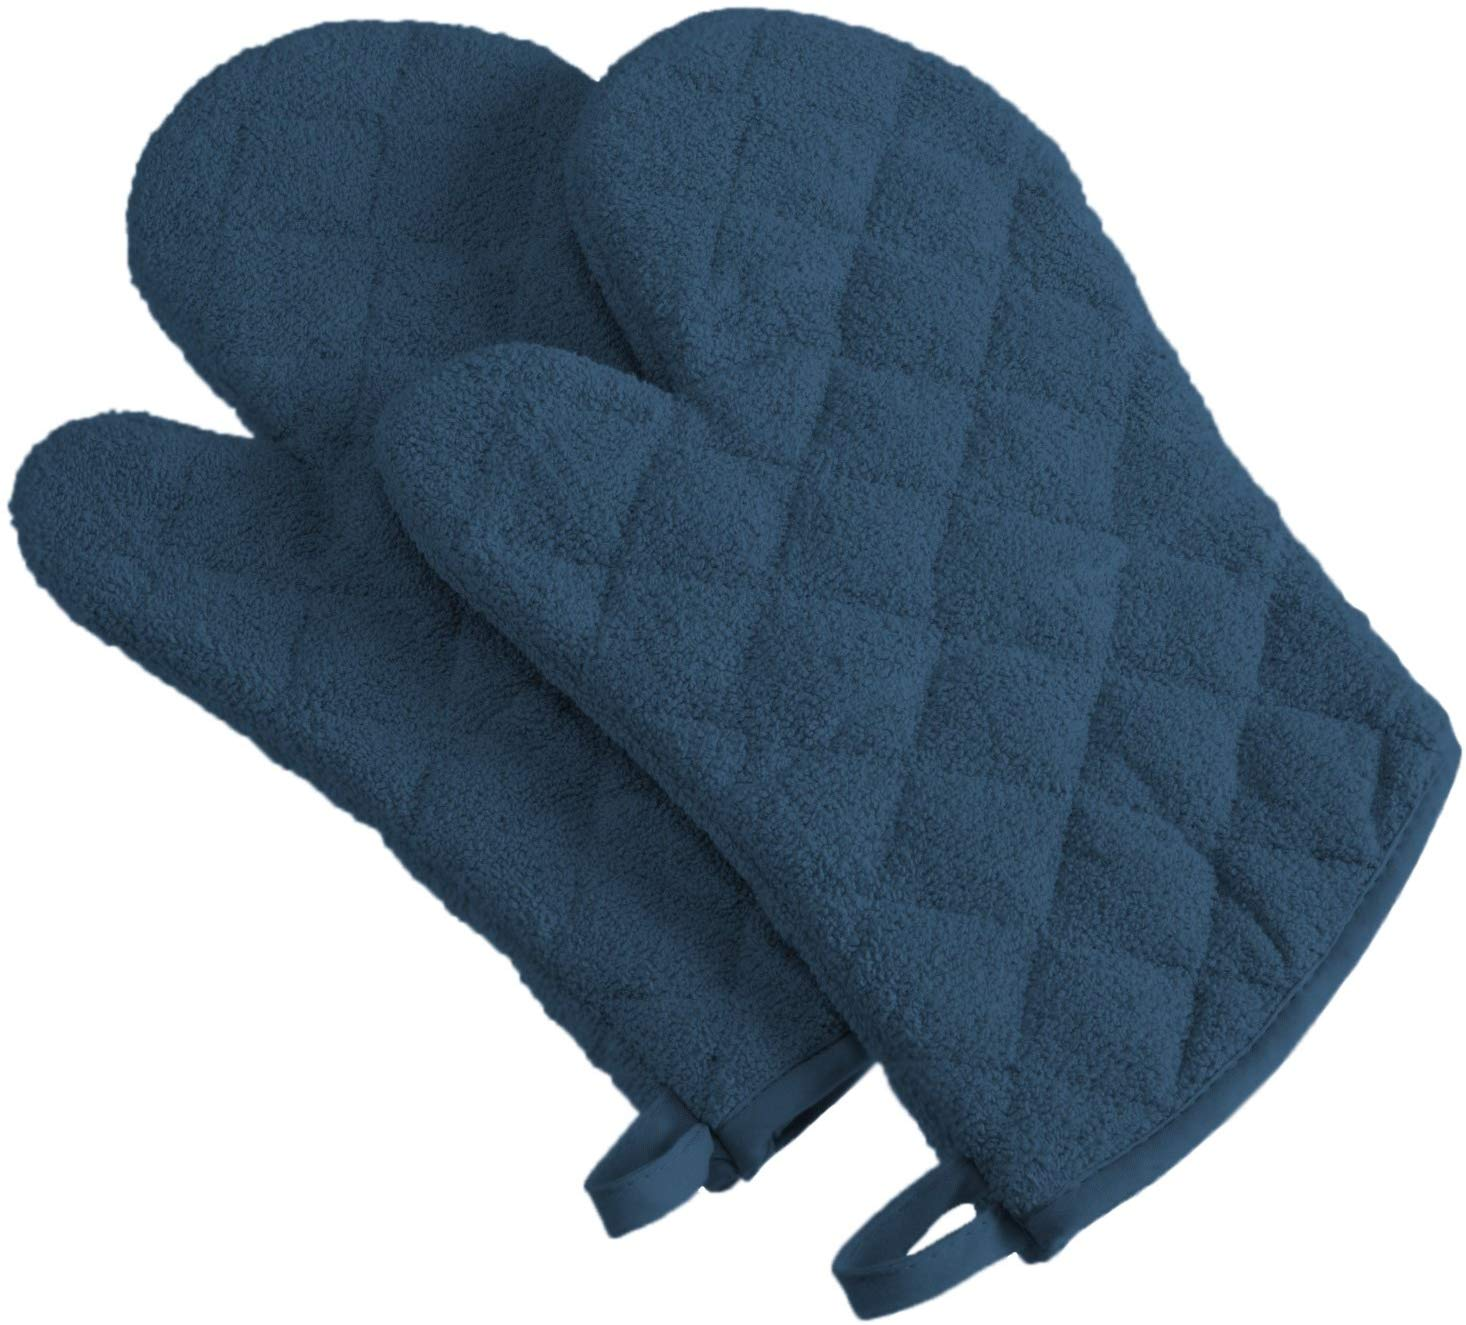 Dii cotton terry oven mitts